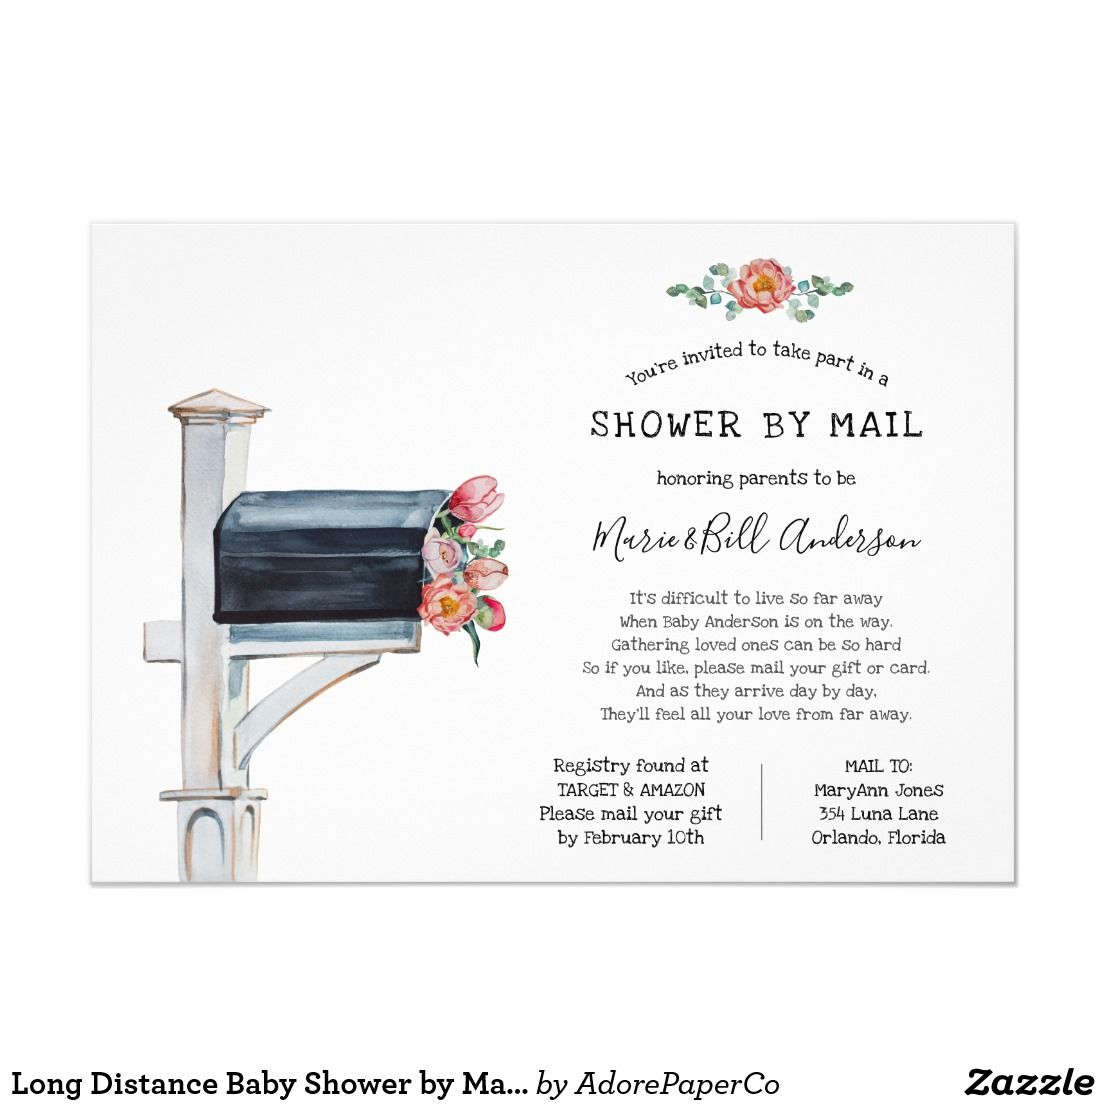 Long Distance Baby Shower By Mail Invitation Zazzle Com With